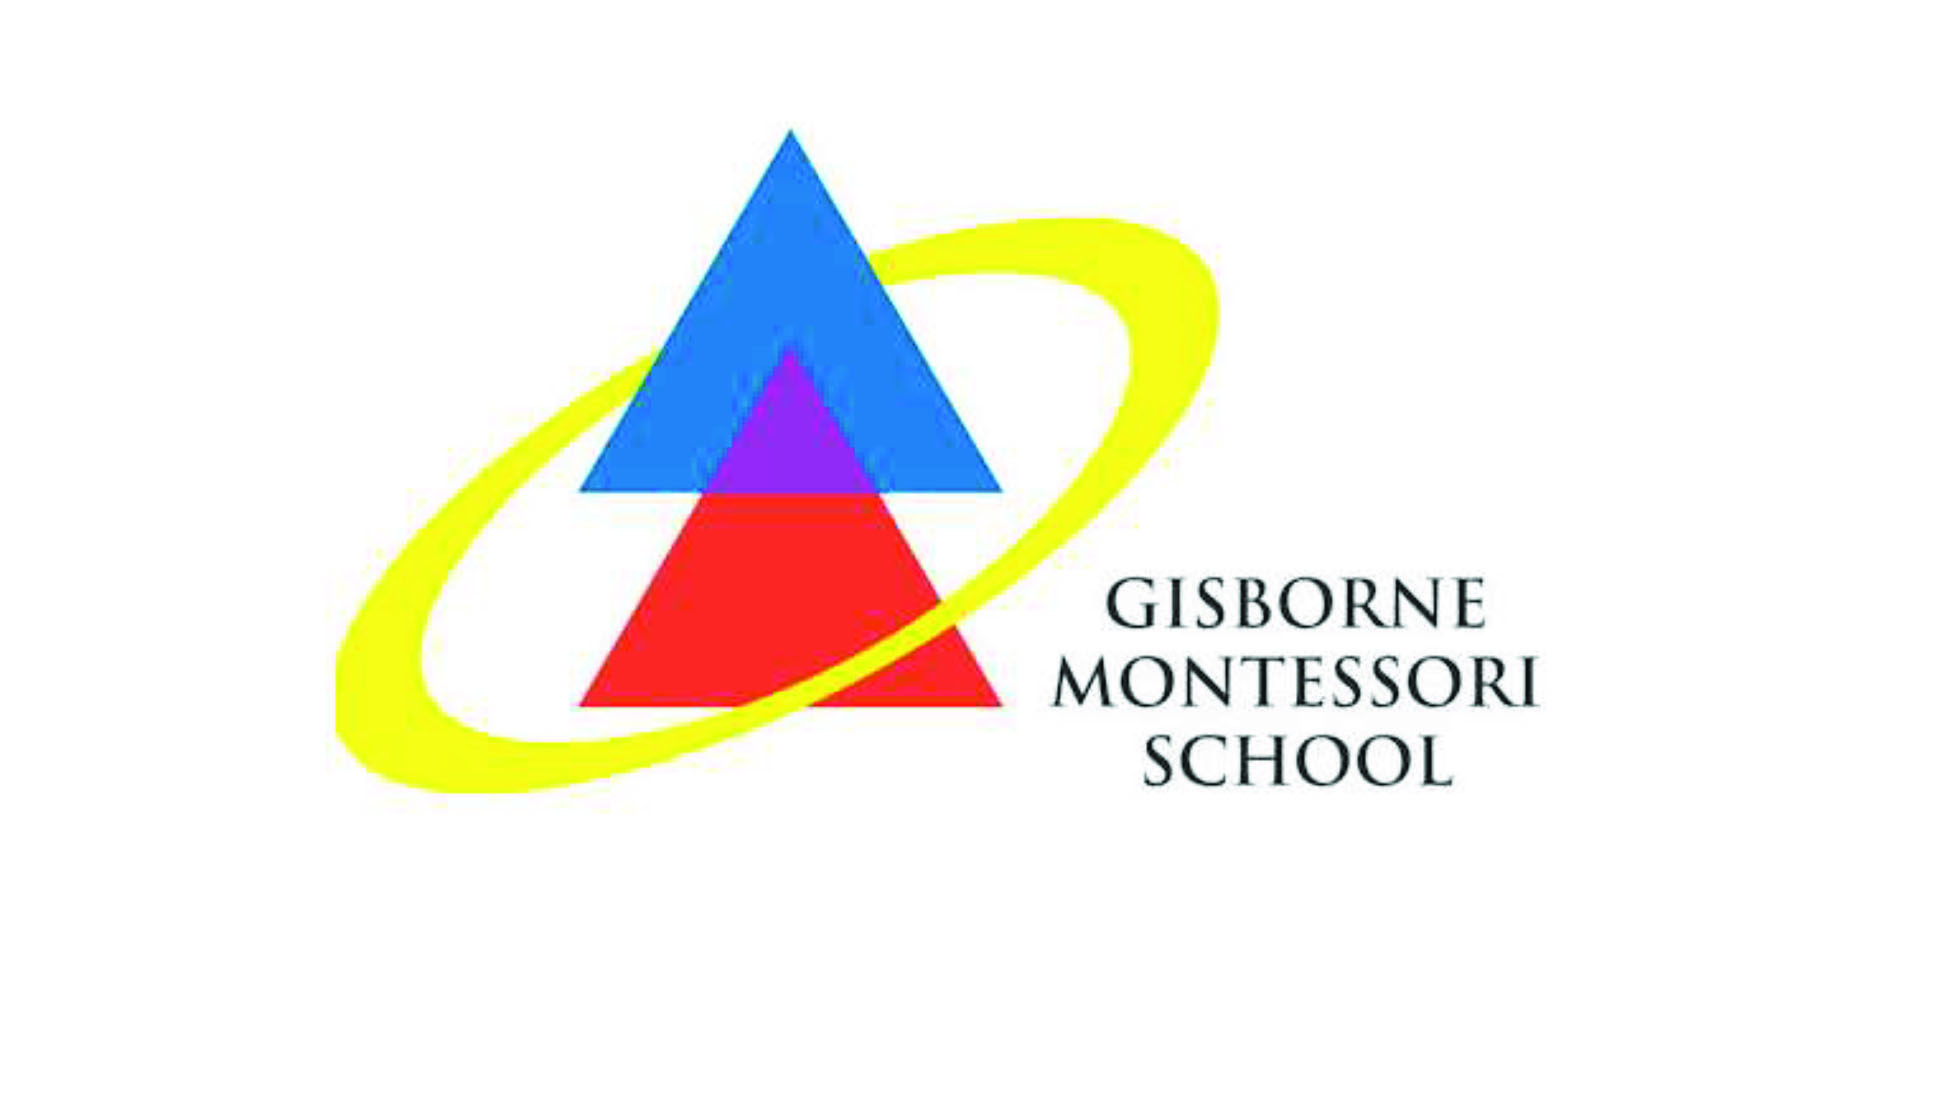 Gisborne Montessori   Gisborne Montessori School is a small, non-denominational, independent school, providing Montessori education for babies, toddlers, preschool and primary school aged children in accordance with the philosophies developed by Dr Maria Montessori. It is one of 4 independent Montessori schools in Victoria currently holding primary registration as well as an early childhood education (pre-school) license. It is the only Montessori primary school in Victoria that is purpose built on sustainable principles.